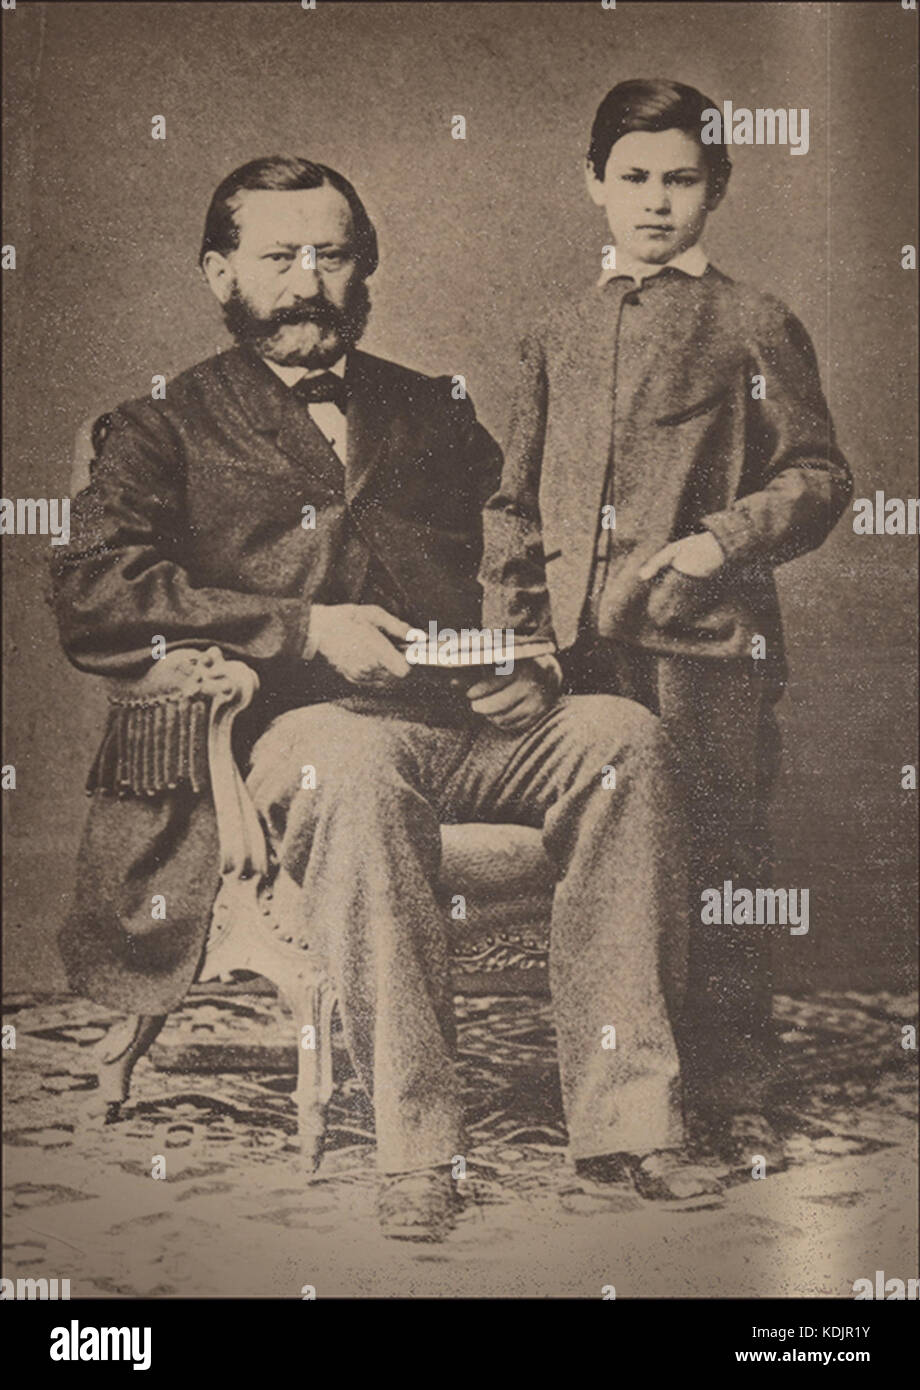 Sigmund Freud as a child with his father - Stock Image